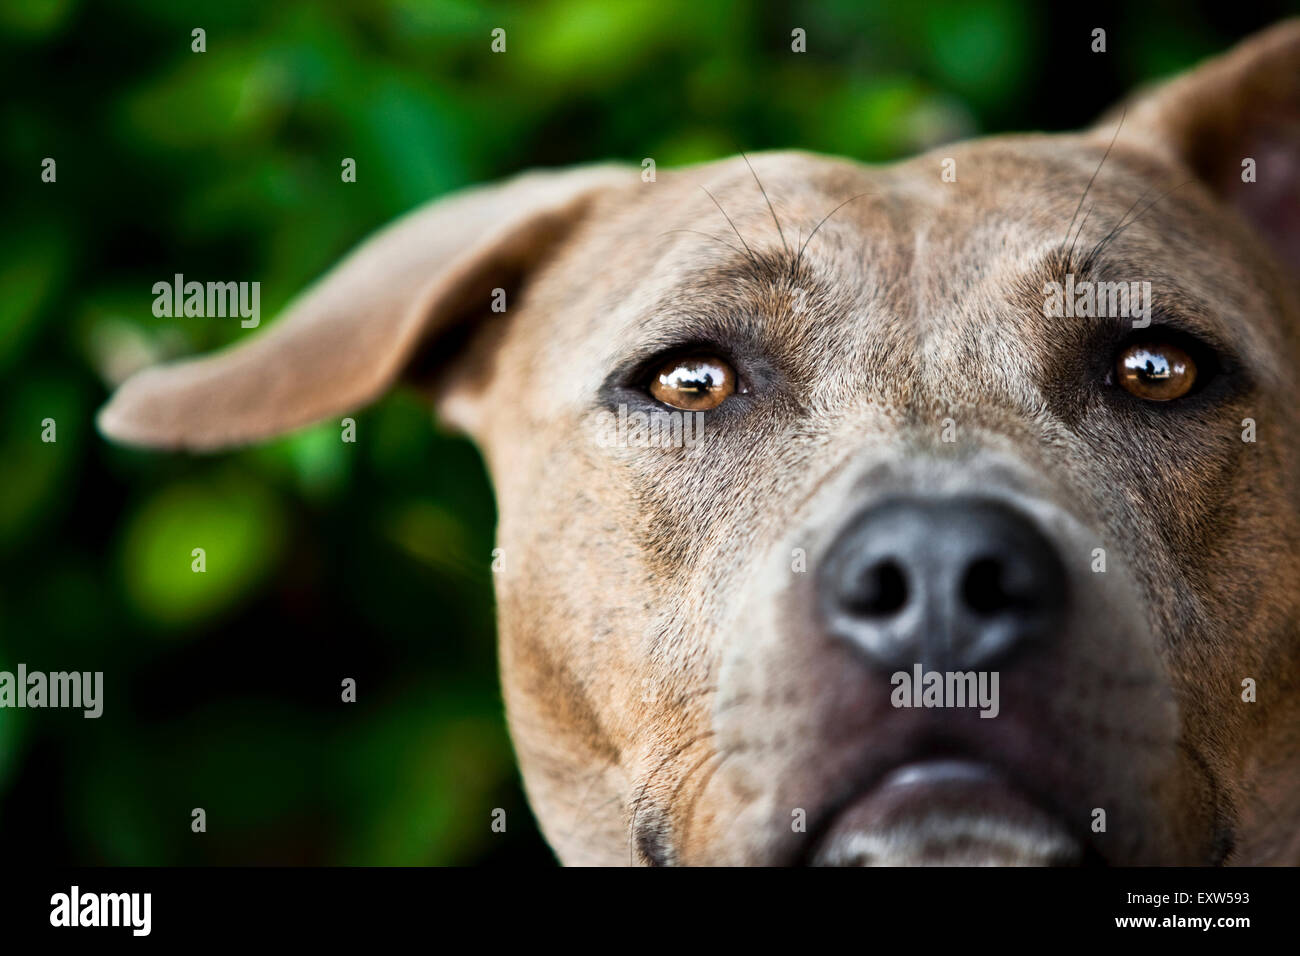 Captivating close up portrait brown Pitbull head, one floppy ear - Stock Image